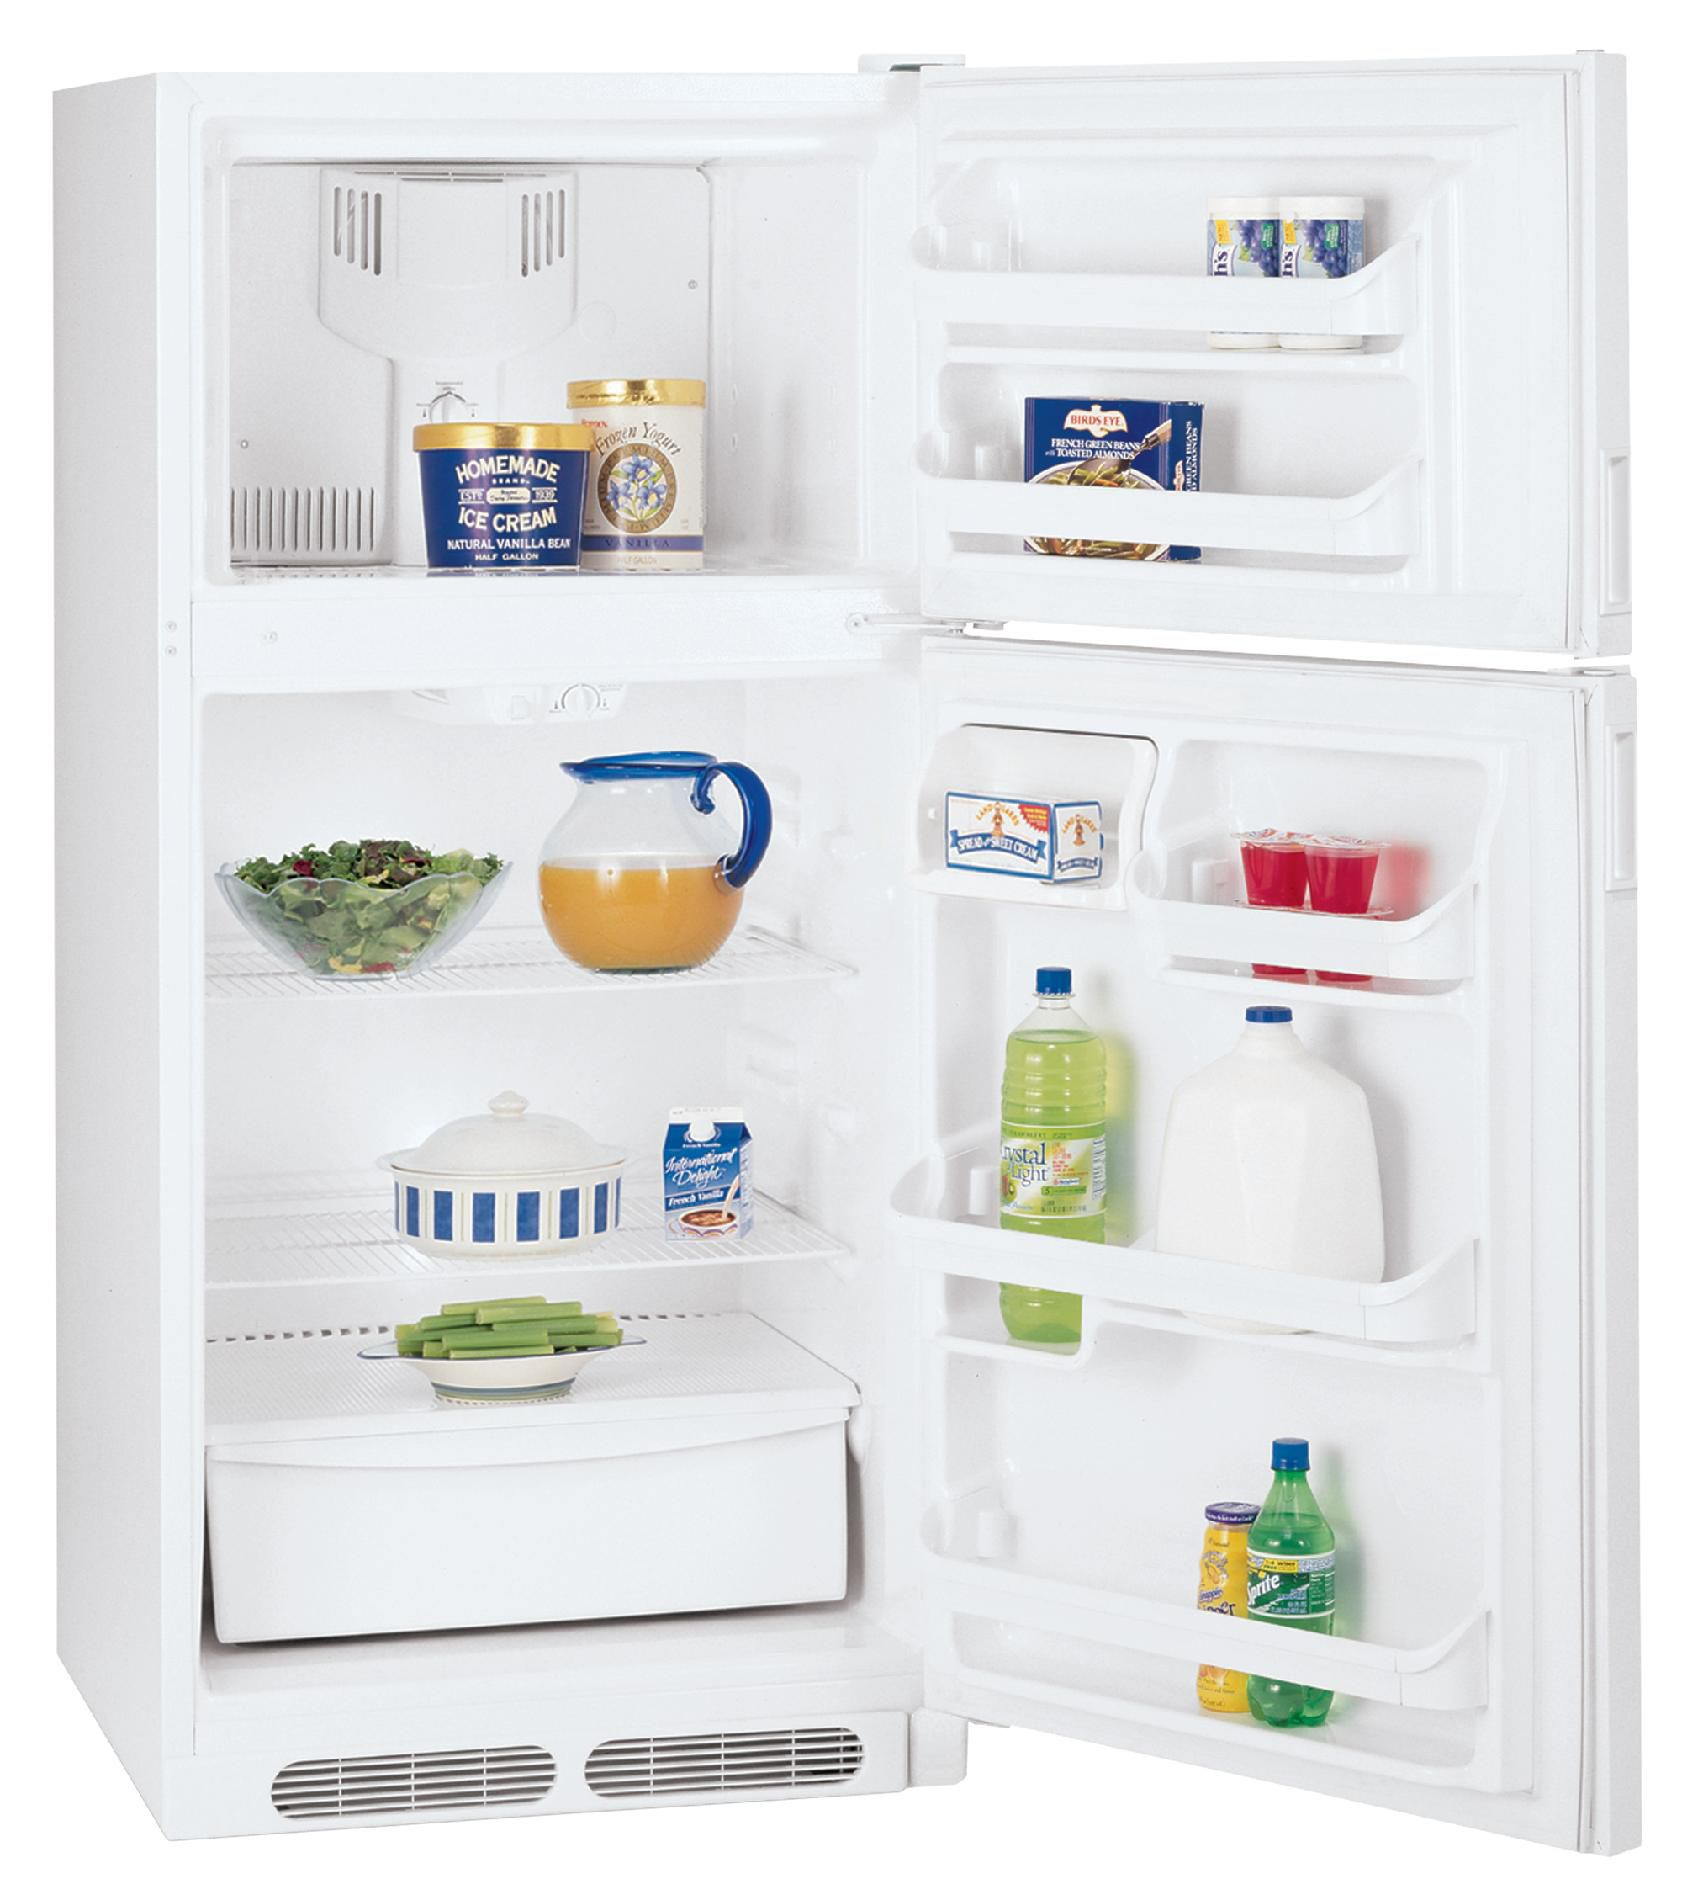 Kenmore 14.8 cu. ft. Top-Freezer Refrigerator, Non-Ice